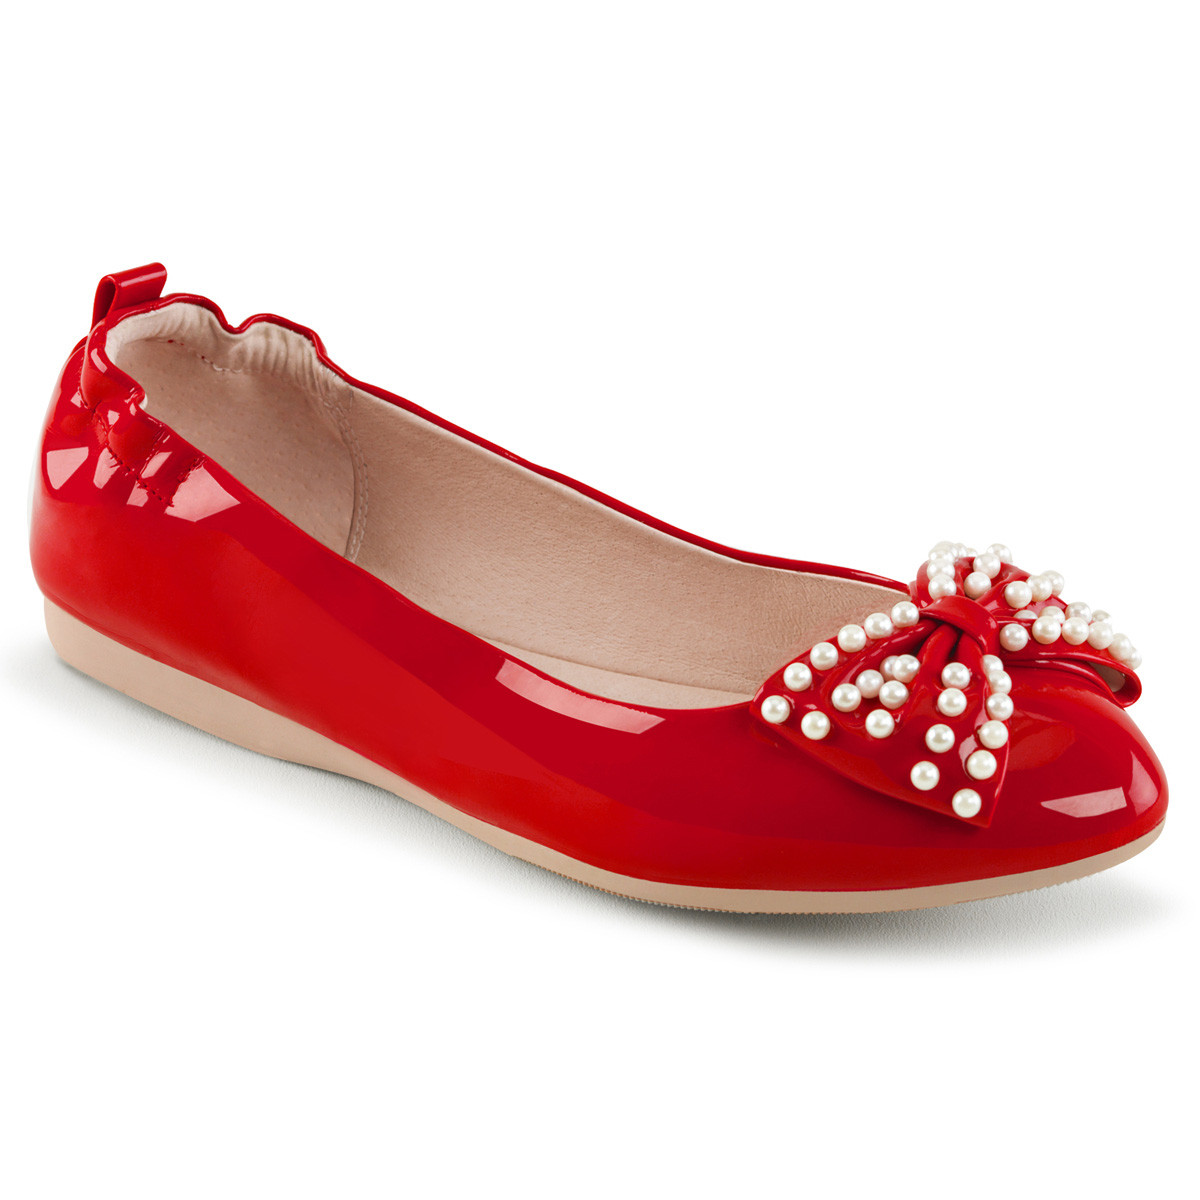 Ballerinas - IVY 09 ° Damen Ballerina ° Rot Lack ° Pin Up Couture  - Onlineshop RedSixty